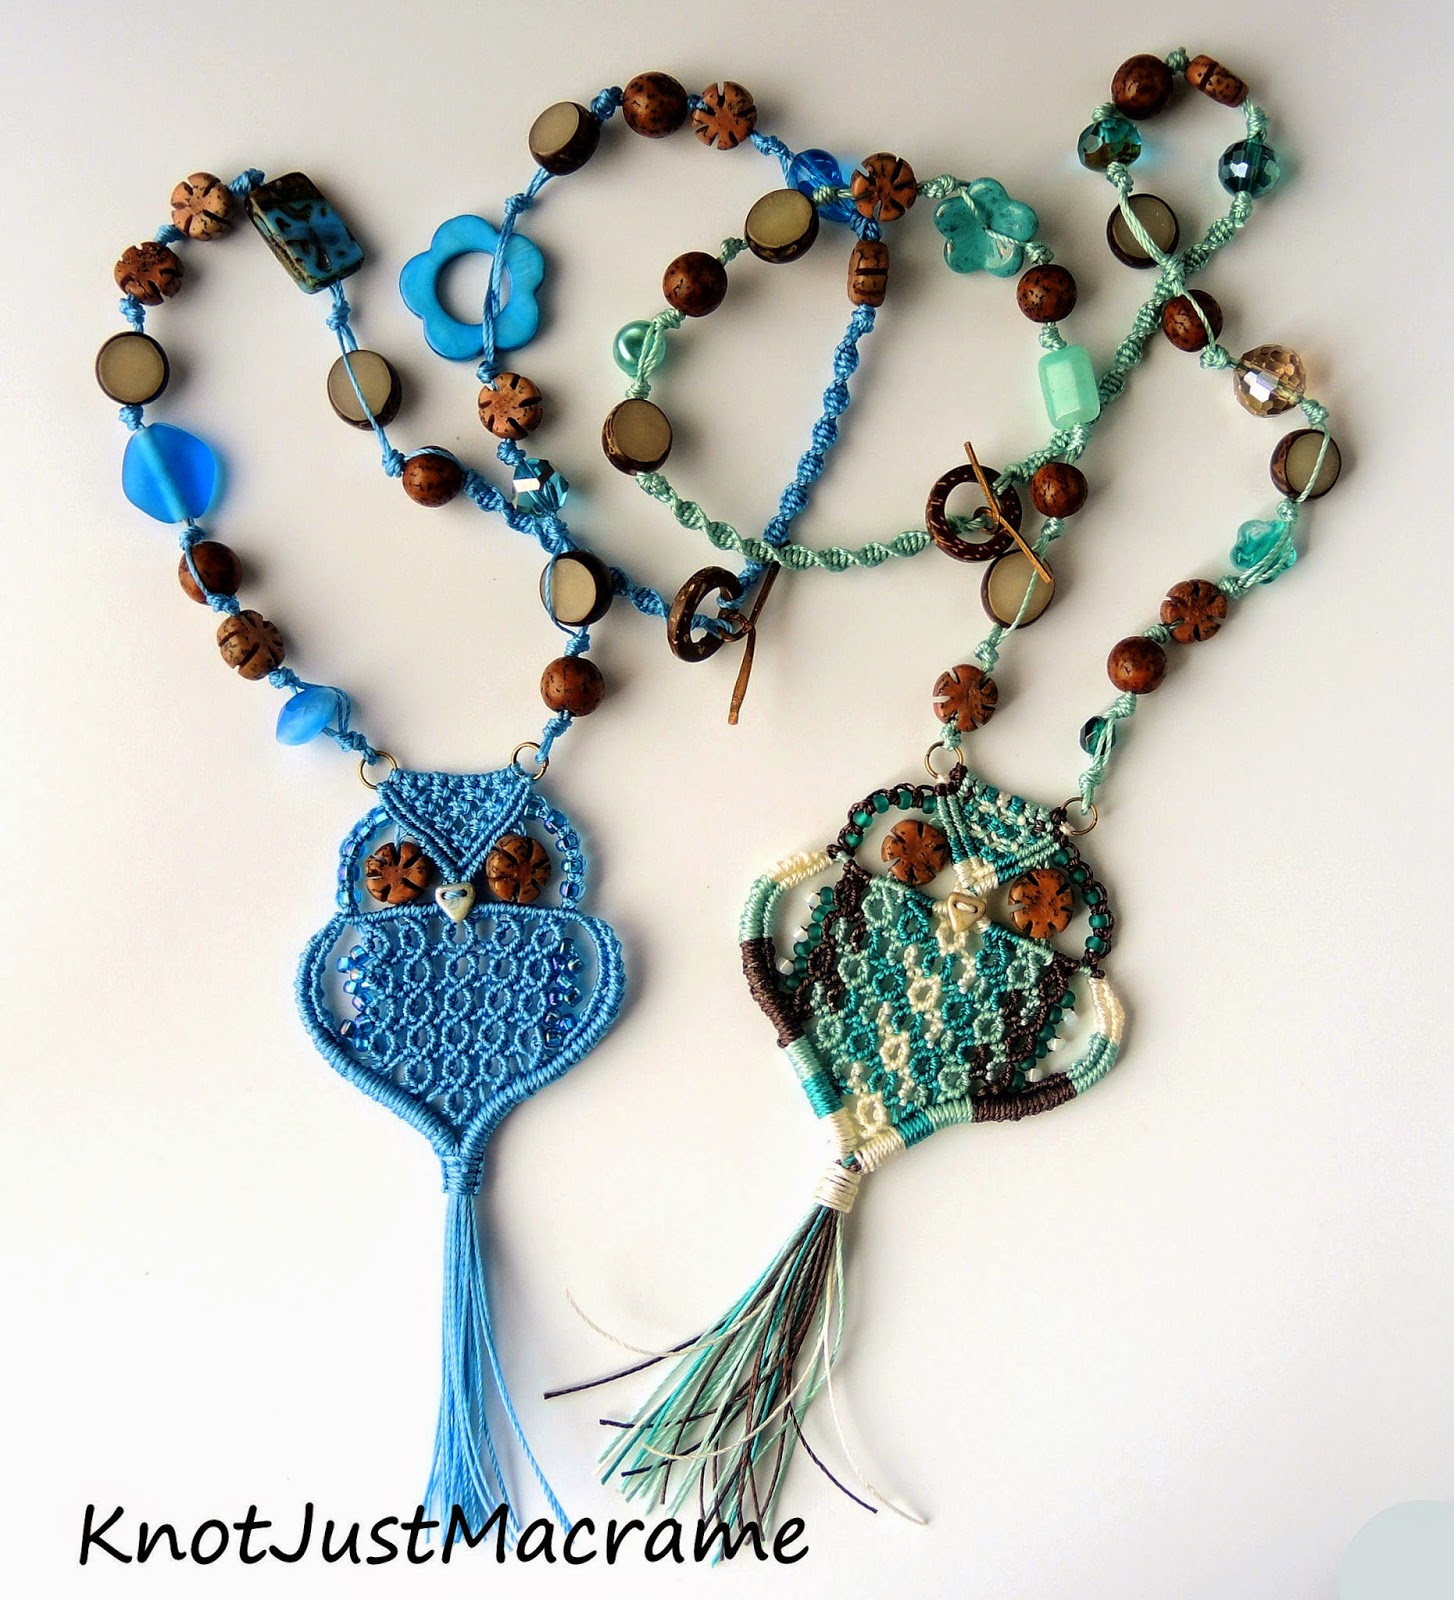 Macrame owl necklaces with natural and glass beads, designed by Sherri Stokey.